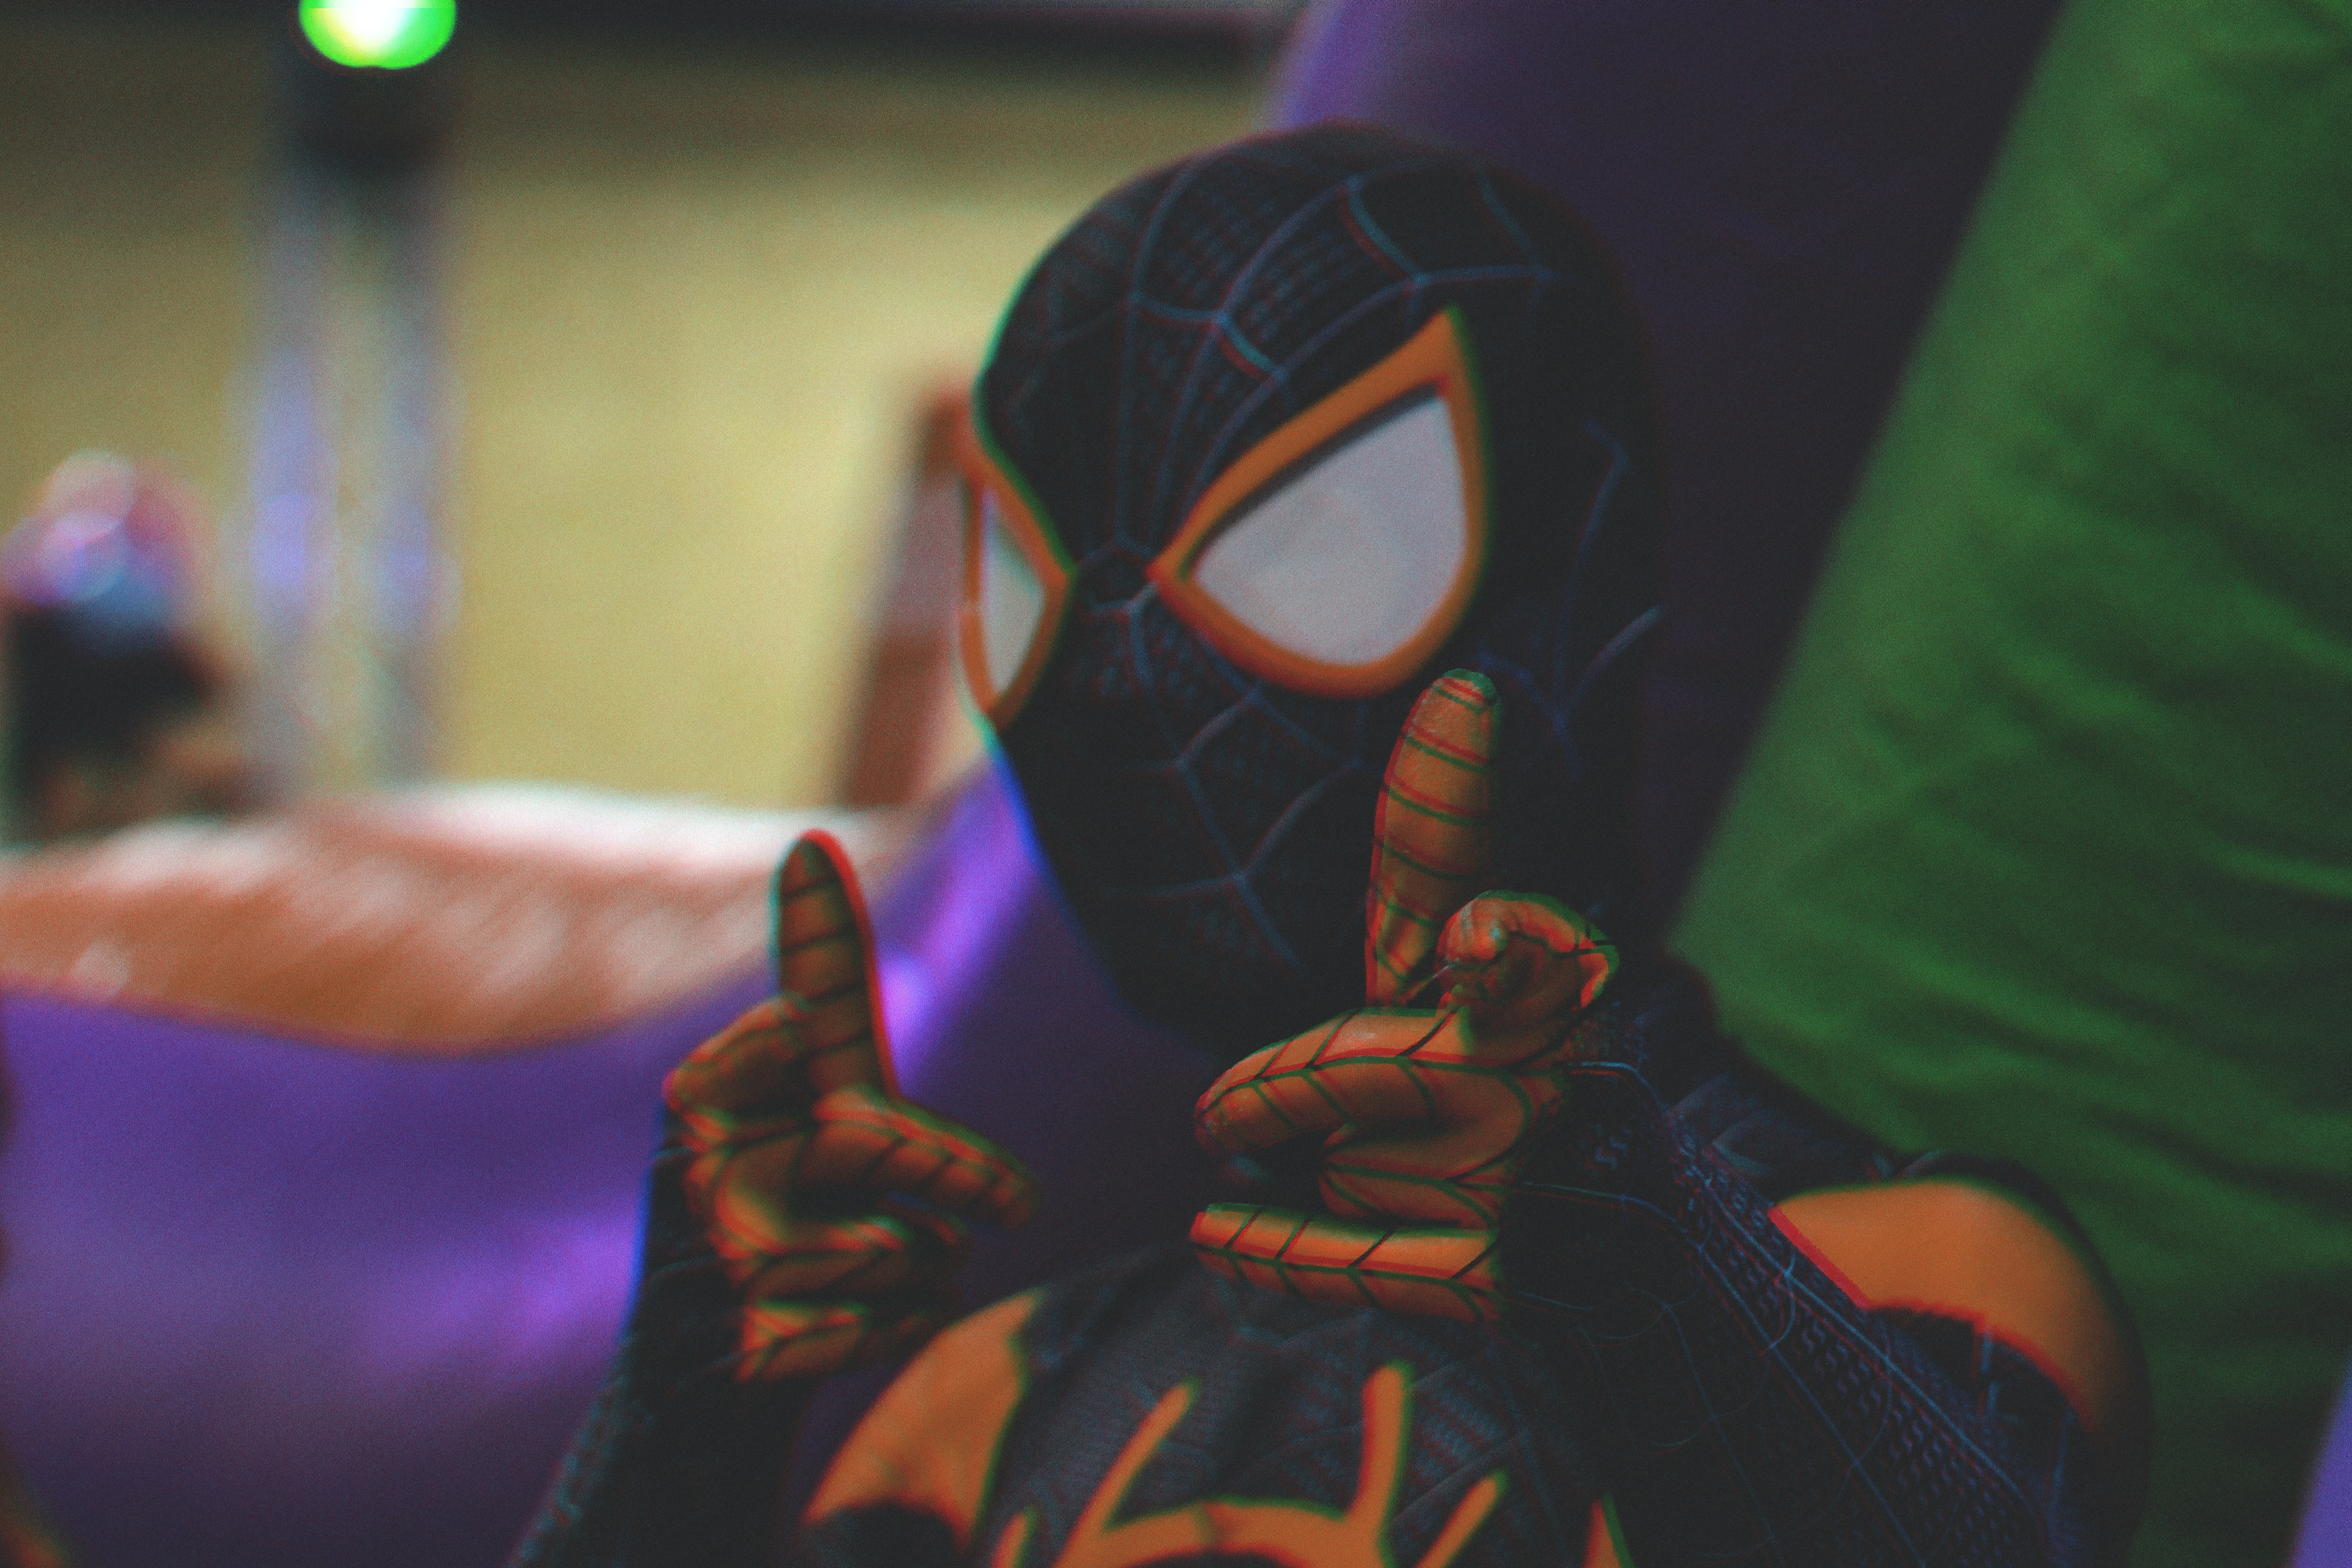 person wearing spider-man costume